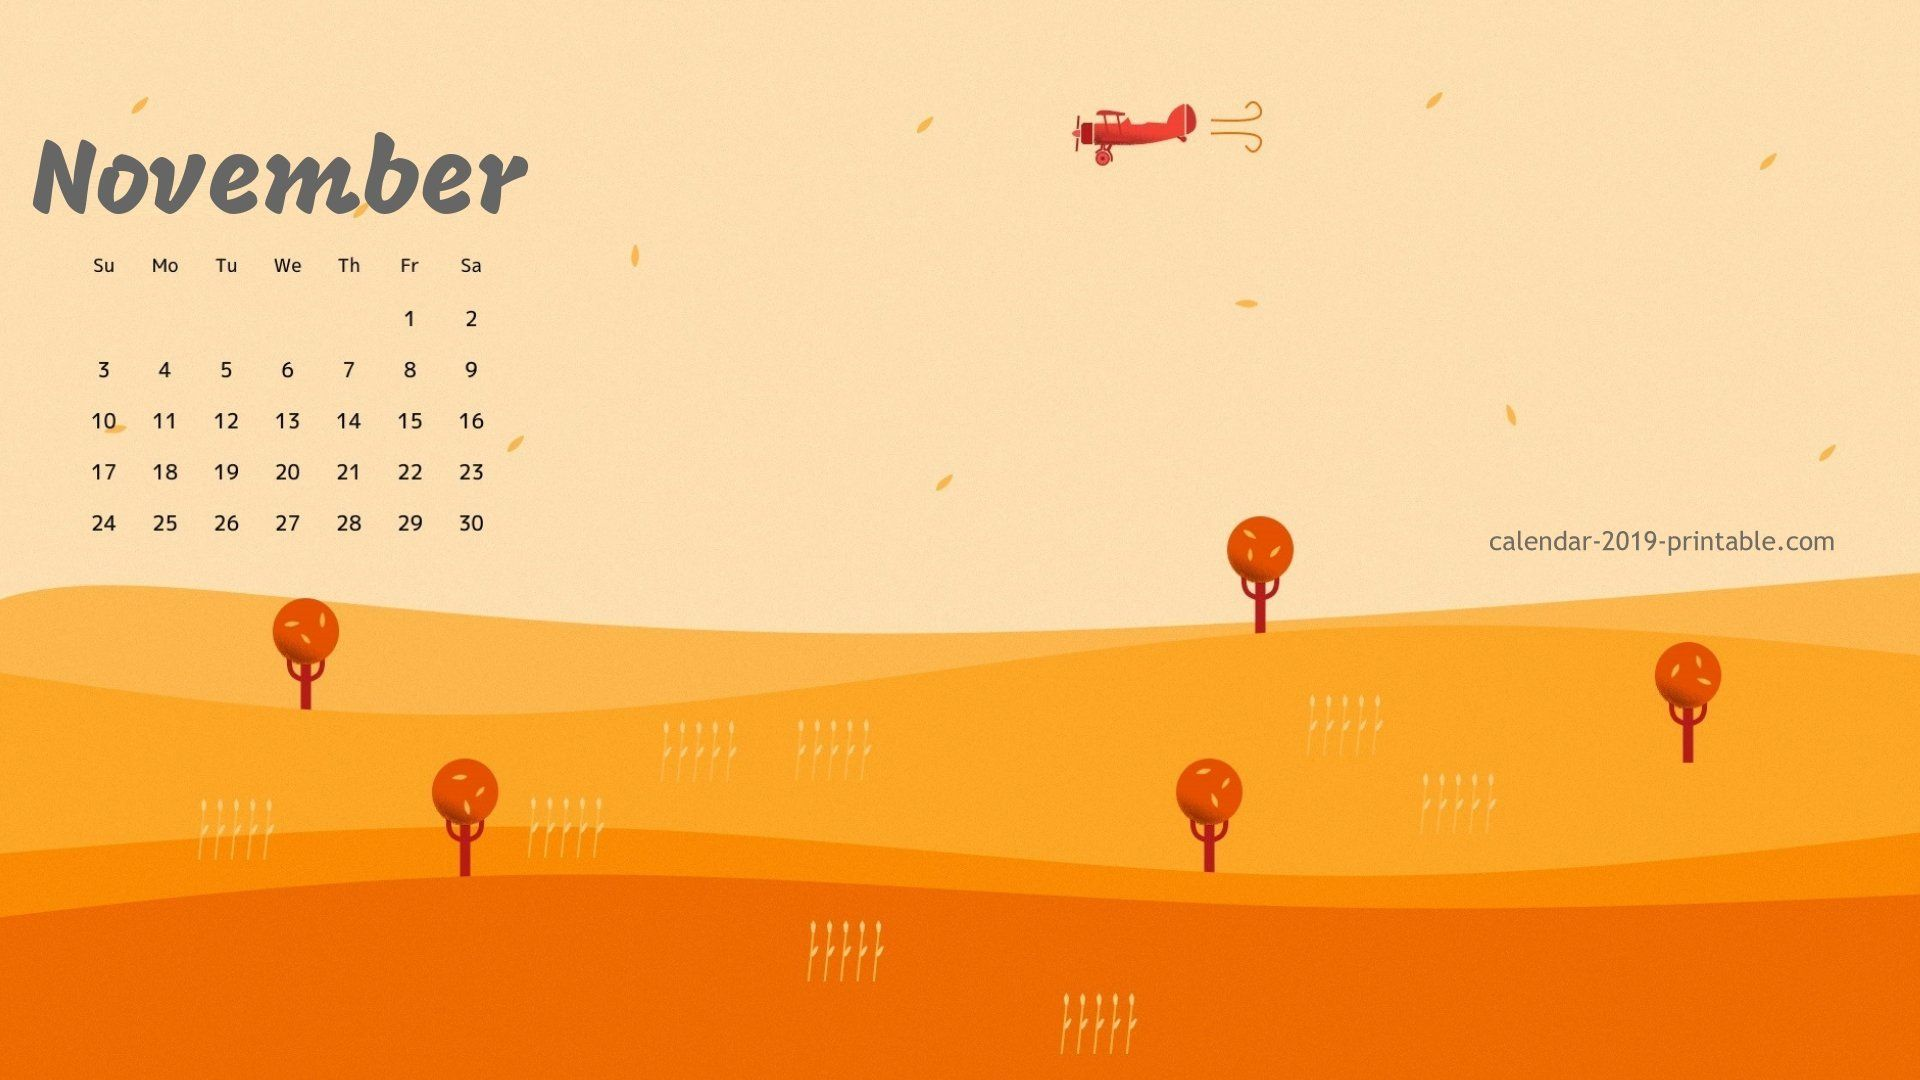 november wallpaper for desktop